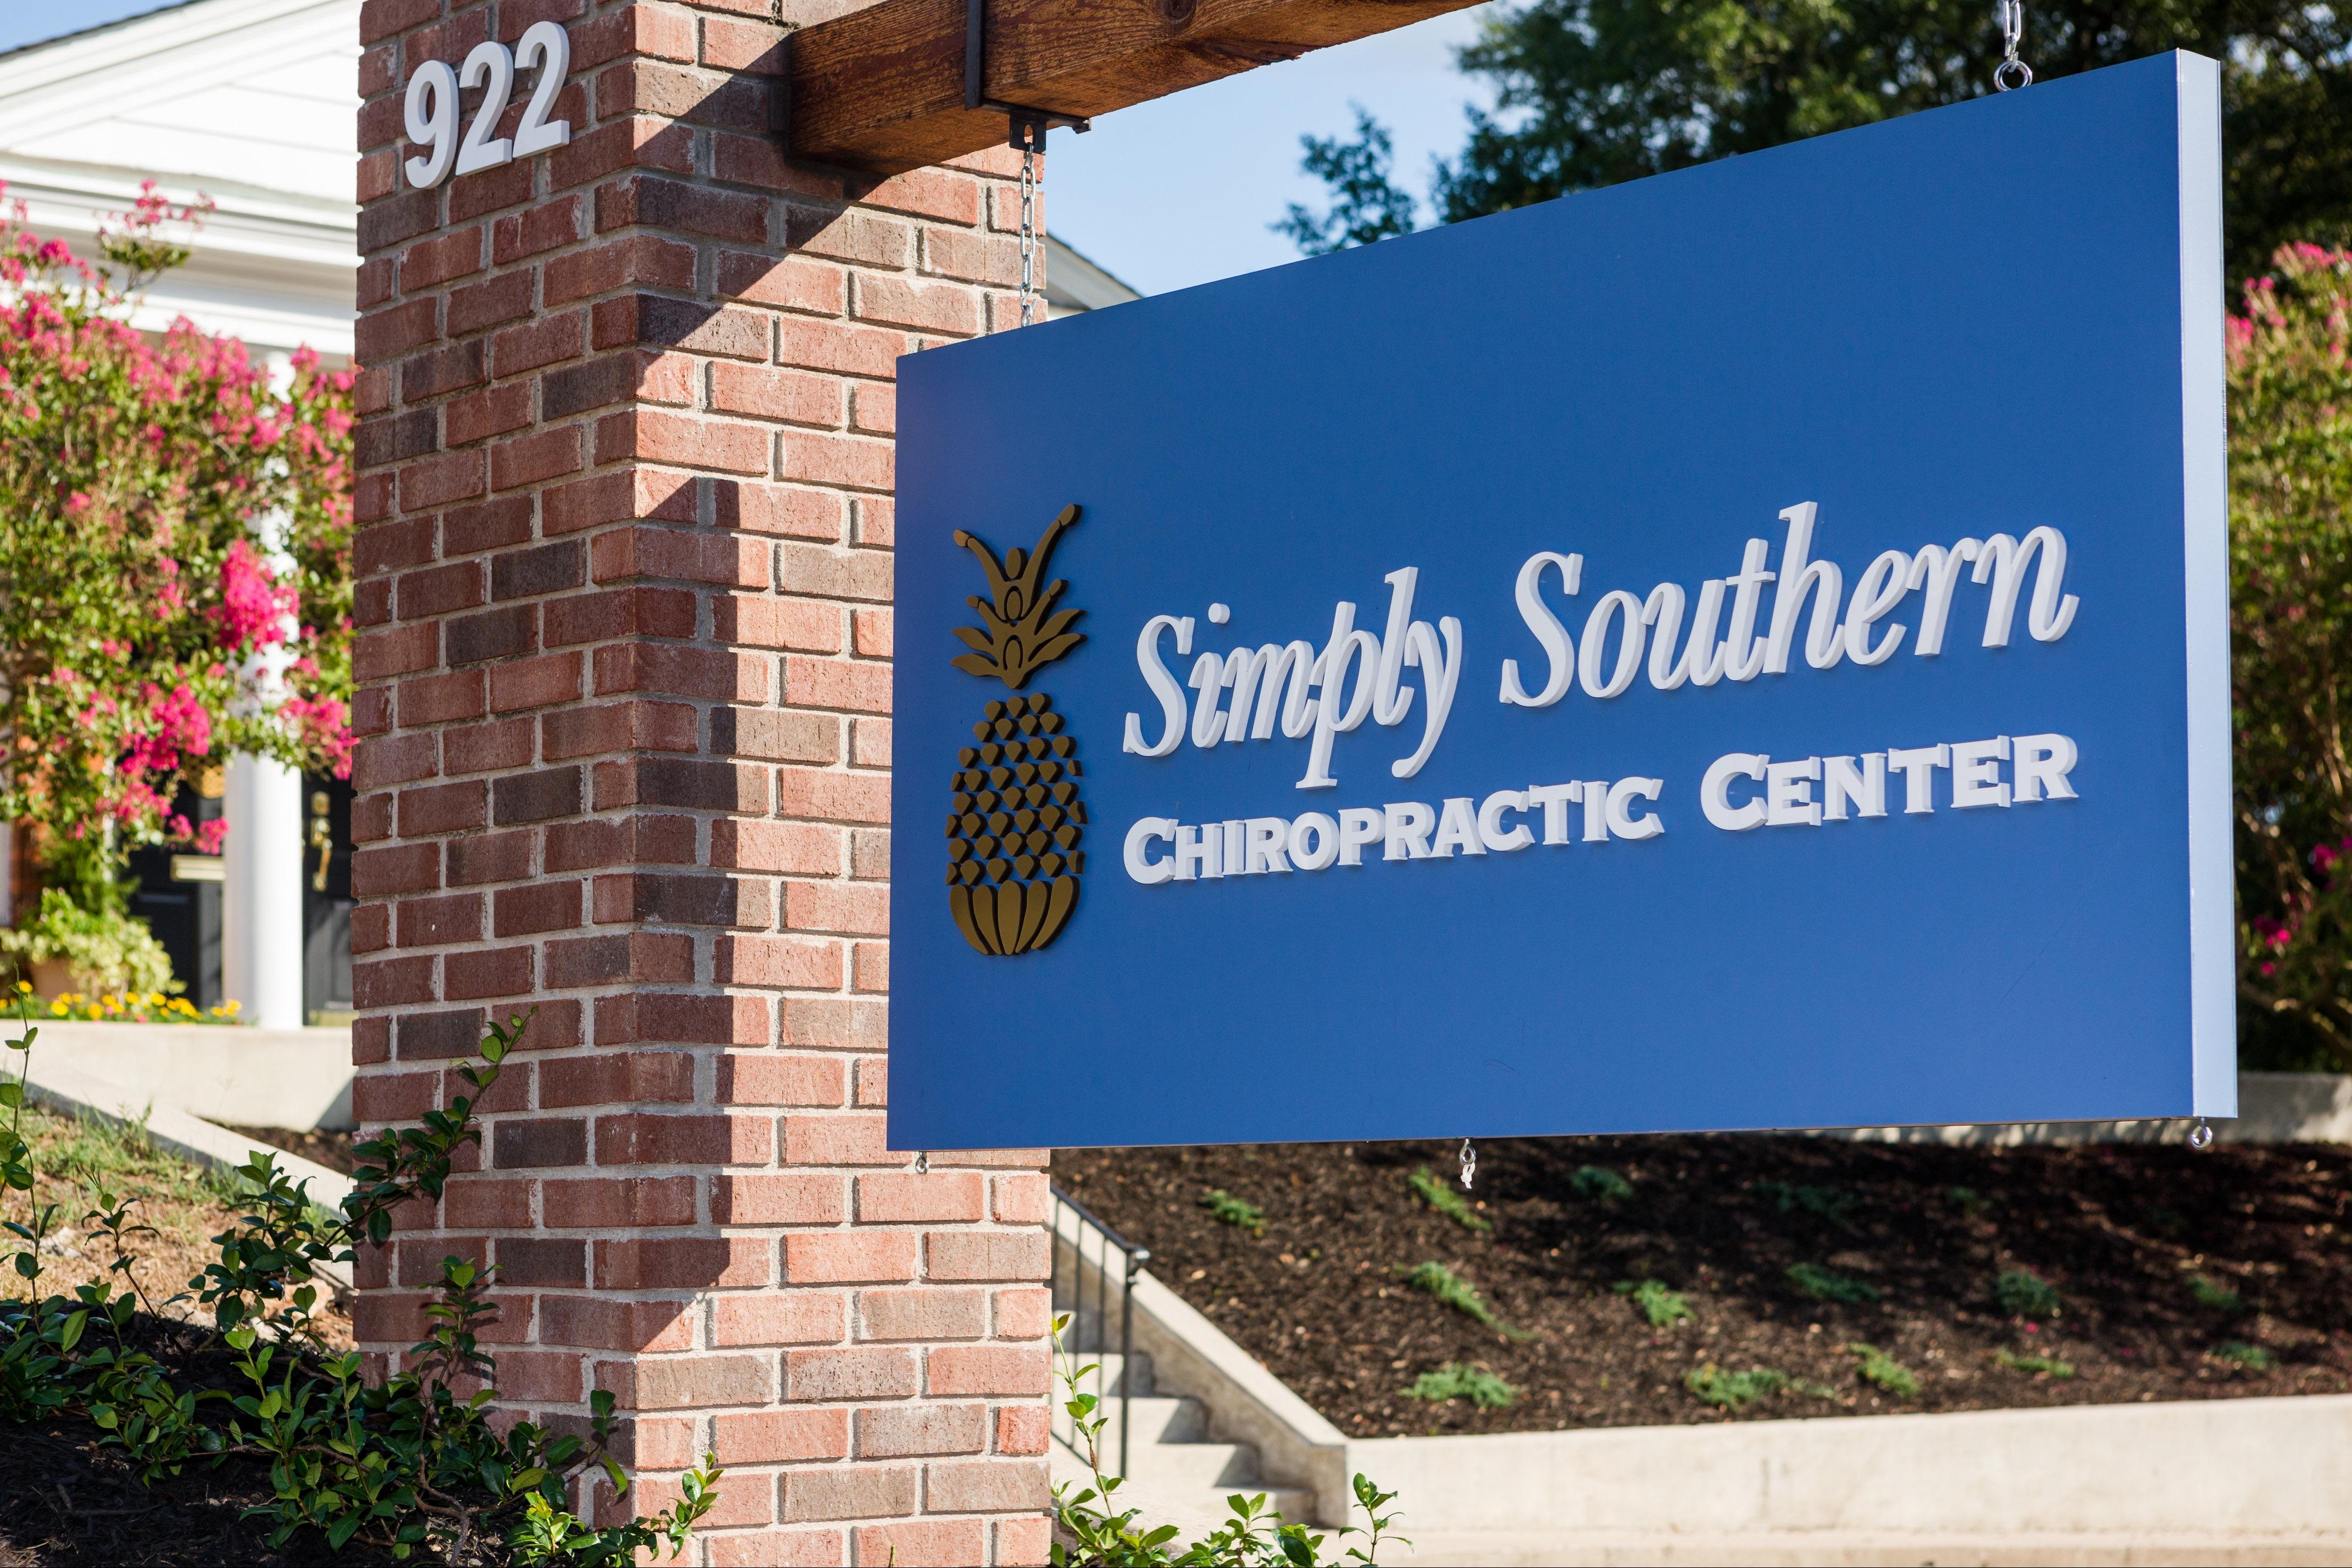 Simply Southern Chiropractic Center image 1